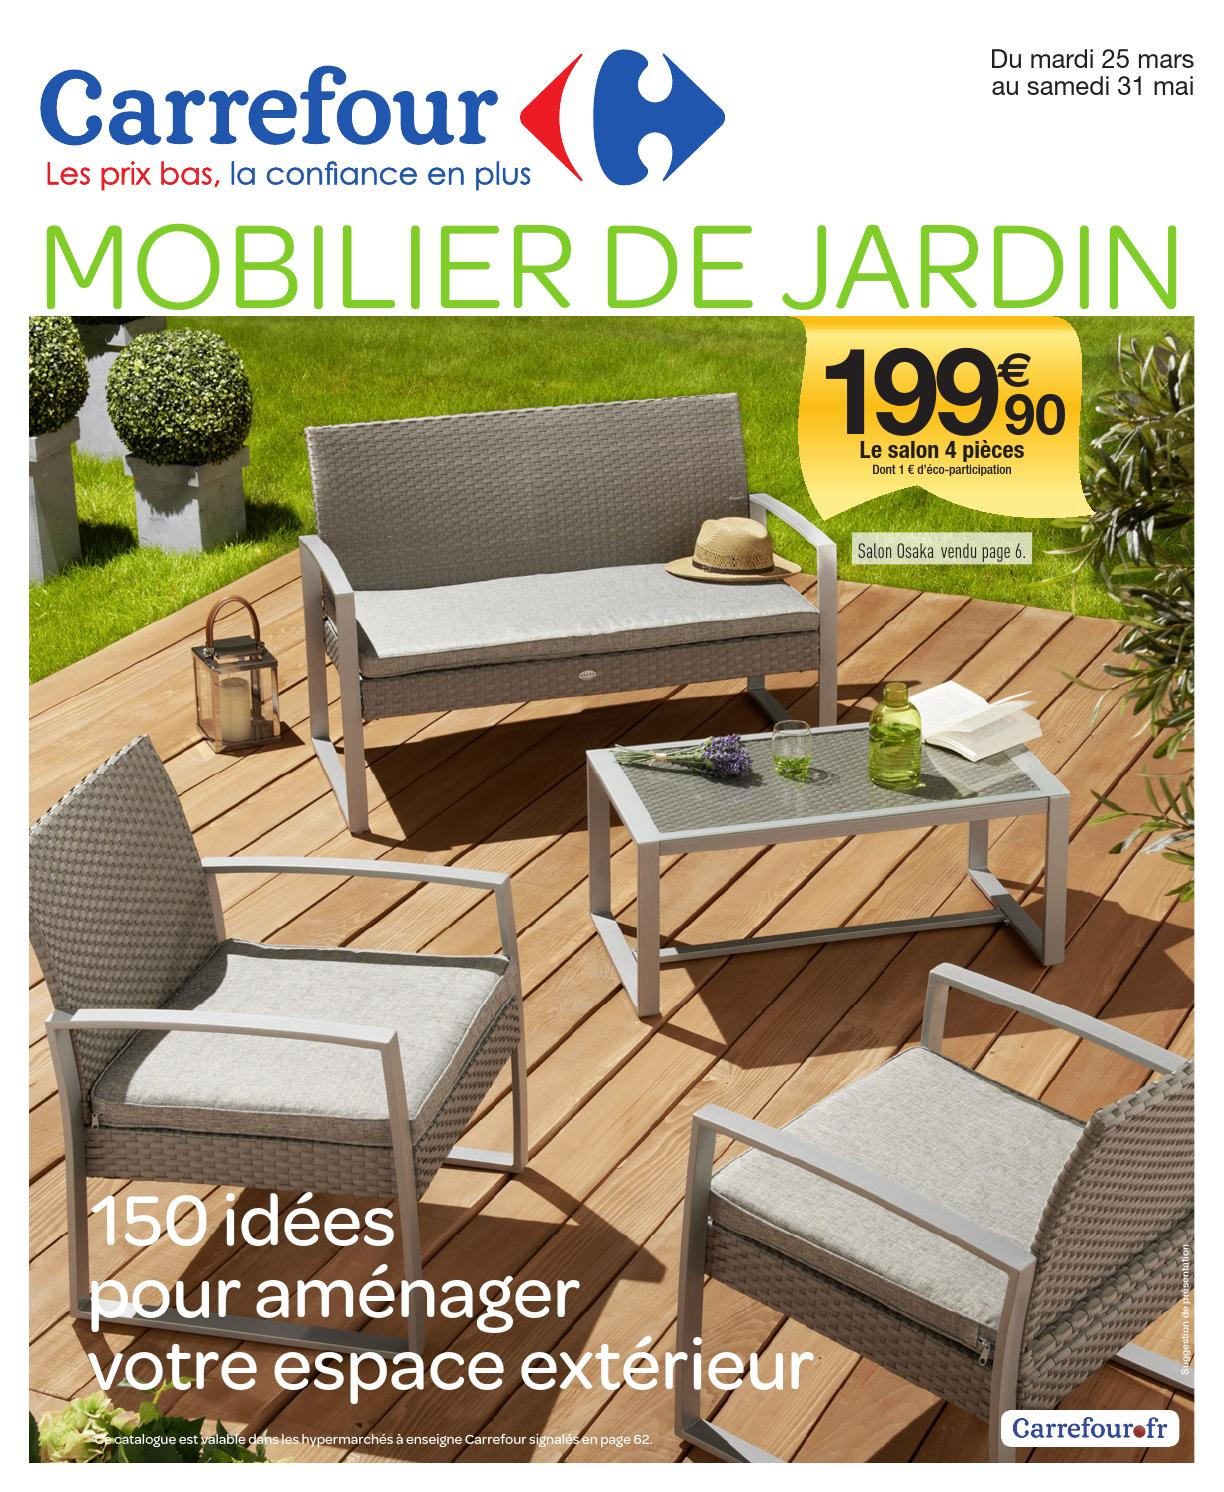 Housse De Protection Salon De Jardin Carrefour Catalogue Carrefour 25 03 31 05 2014 By Joe Monroe Issuu